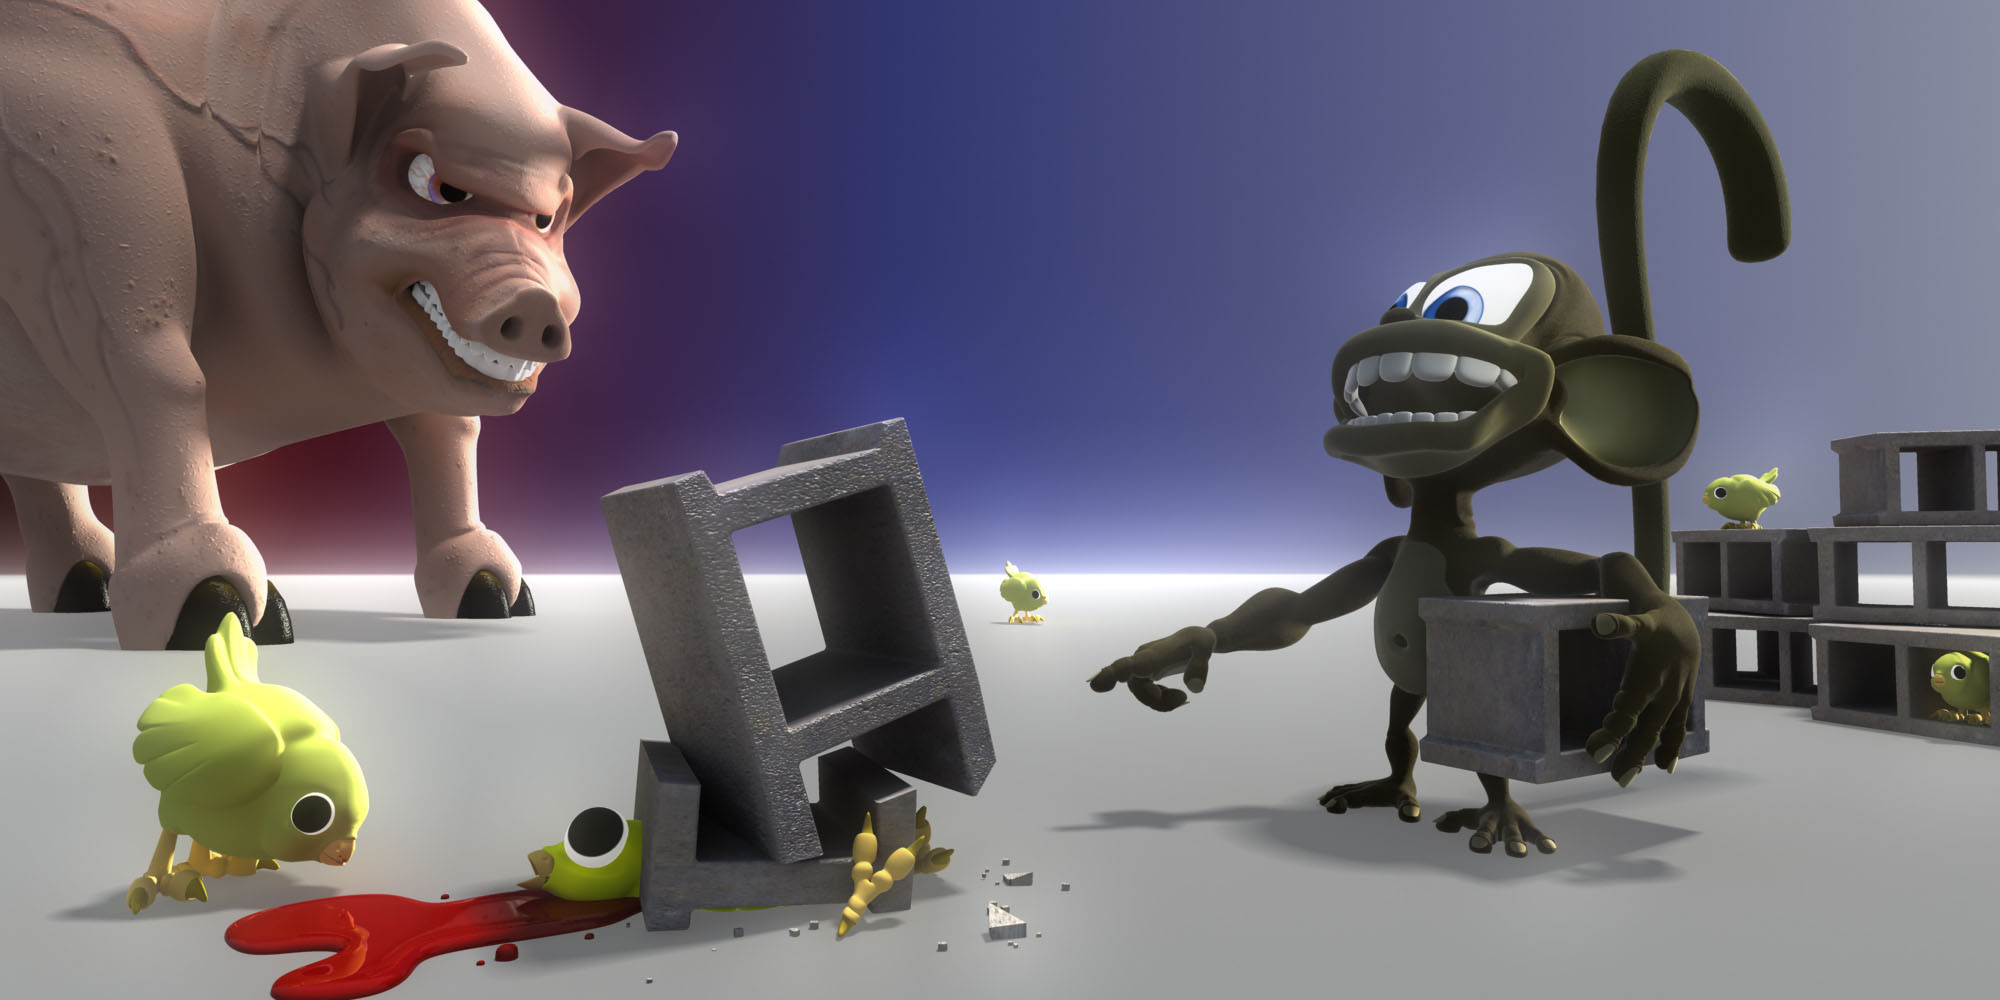 An innocent game of cinder blocks and baby chickens comes to an abrupt end when Monkey kills the evil pig's only friend.